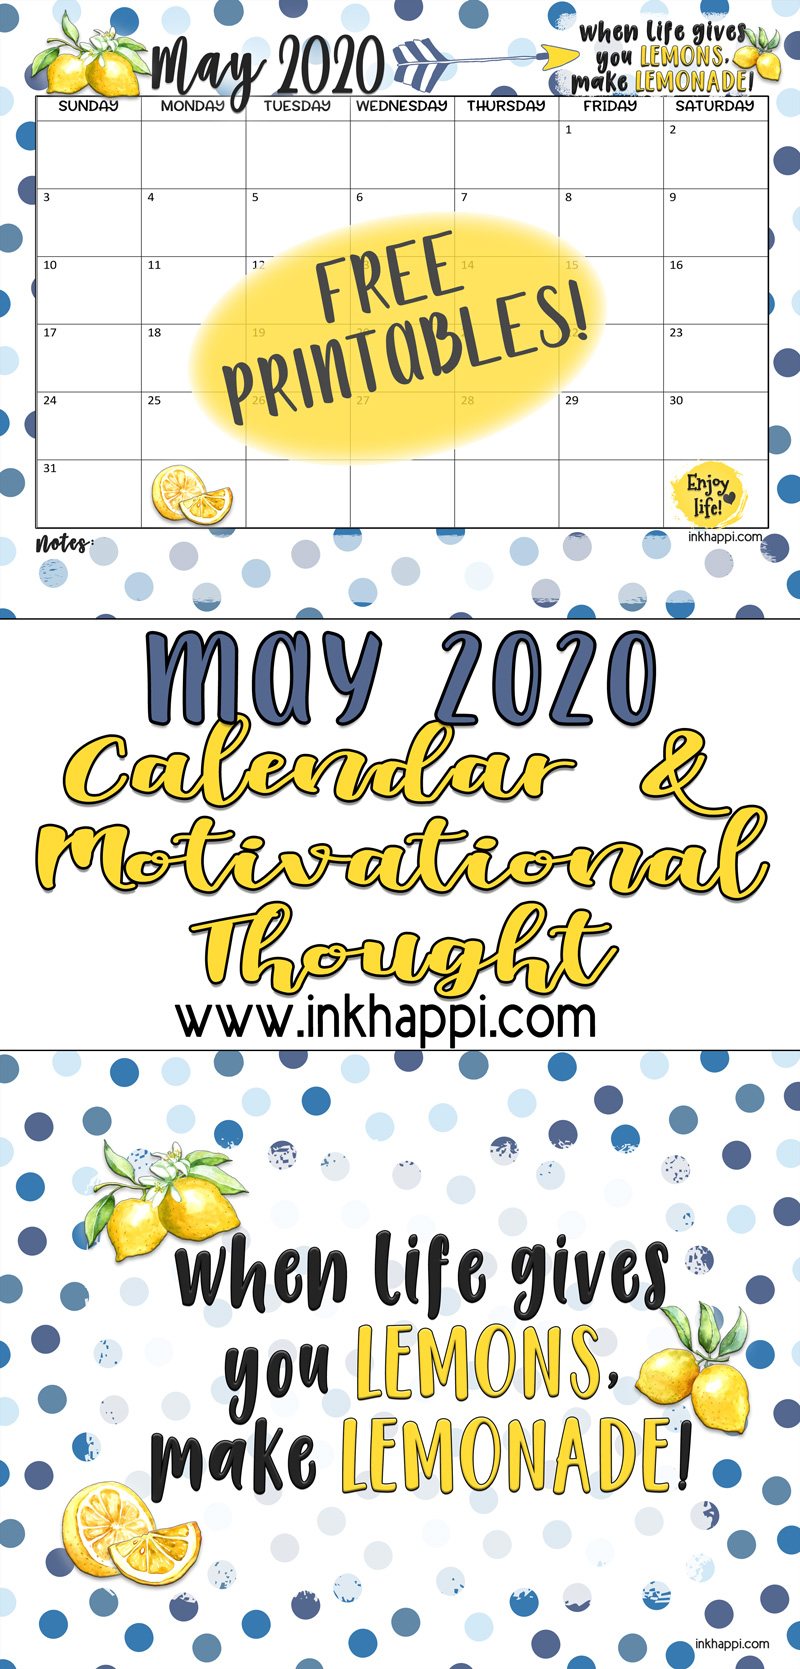 May 2020 calendar and a motivational thought #calendar #freeprintable #makelemonade